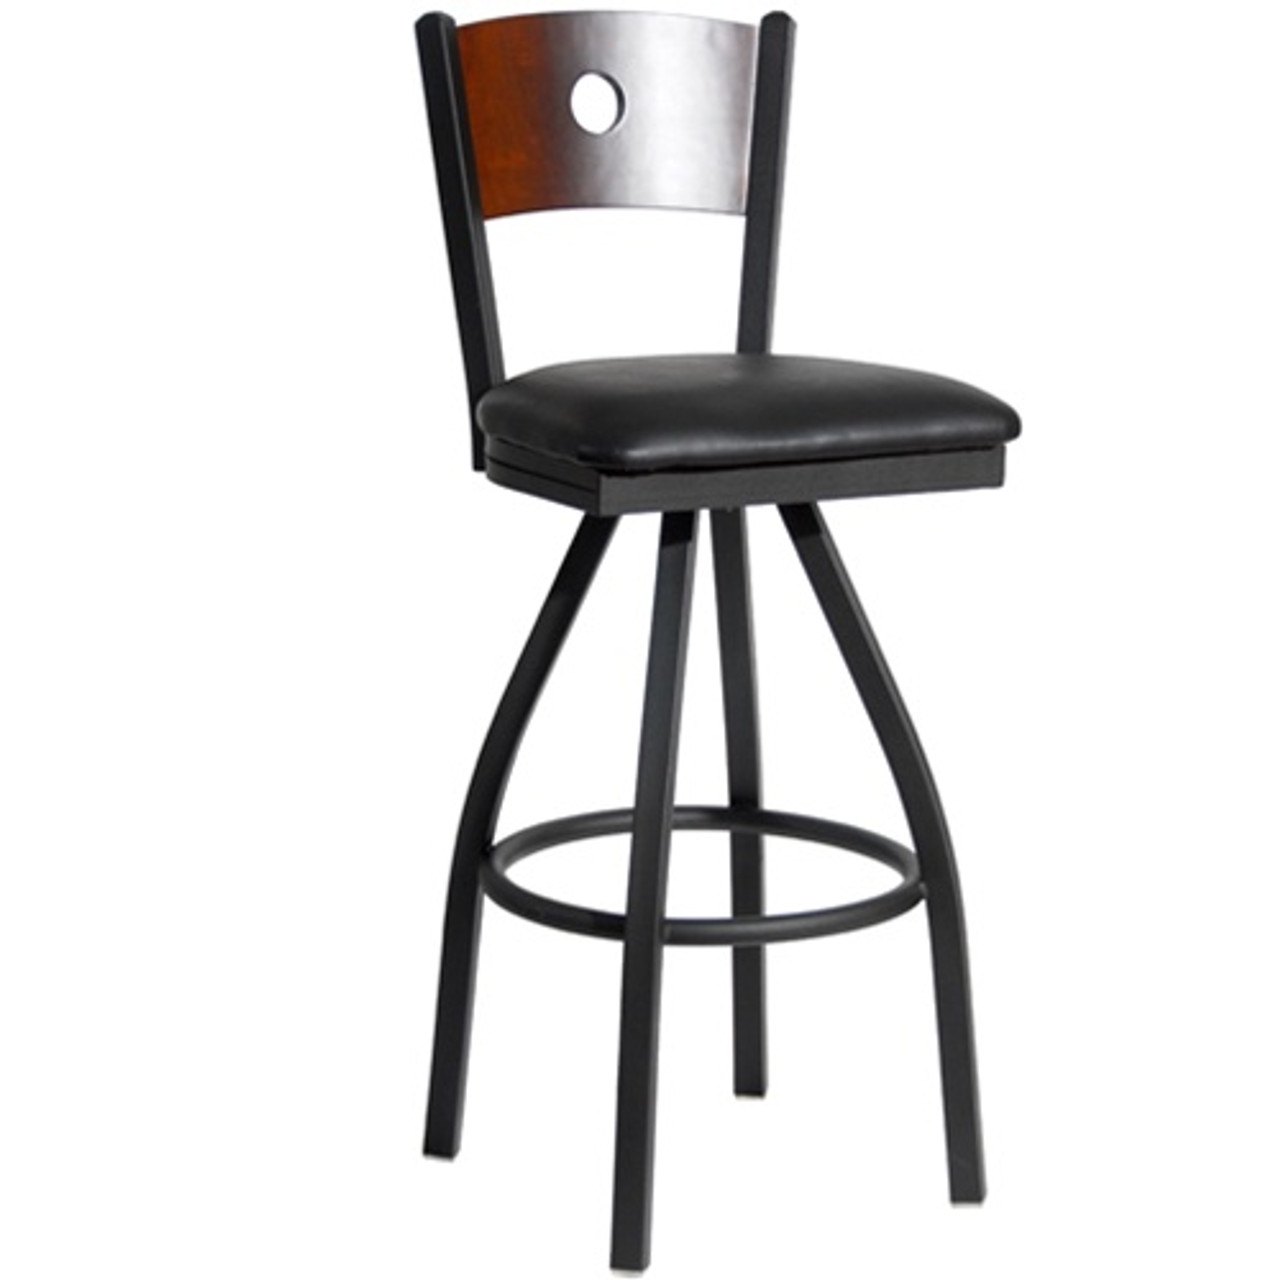 Cool Bfm Seating Darby Metal Circle Wood Back Restaurant Swivel Bar Stool With Vinyl Seat 2152S Sbv Alphanode Cool Chair Designs And Ideas Alphanodeonline